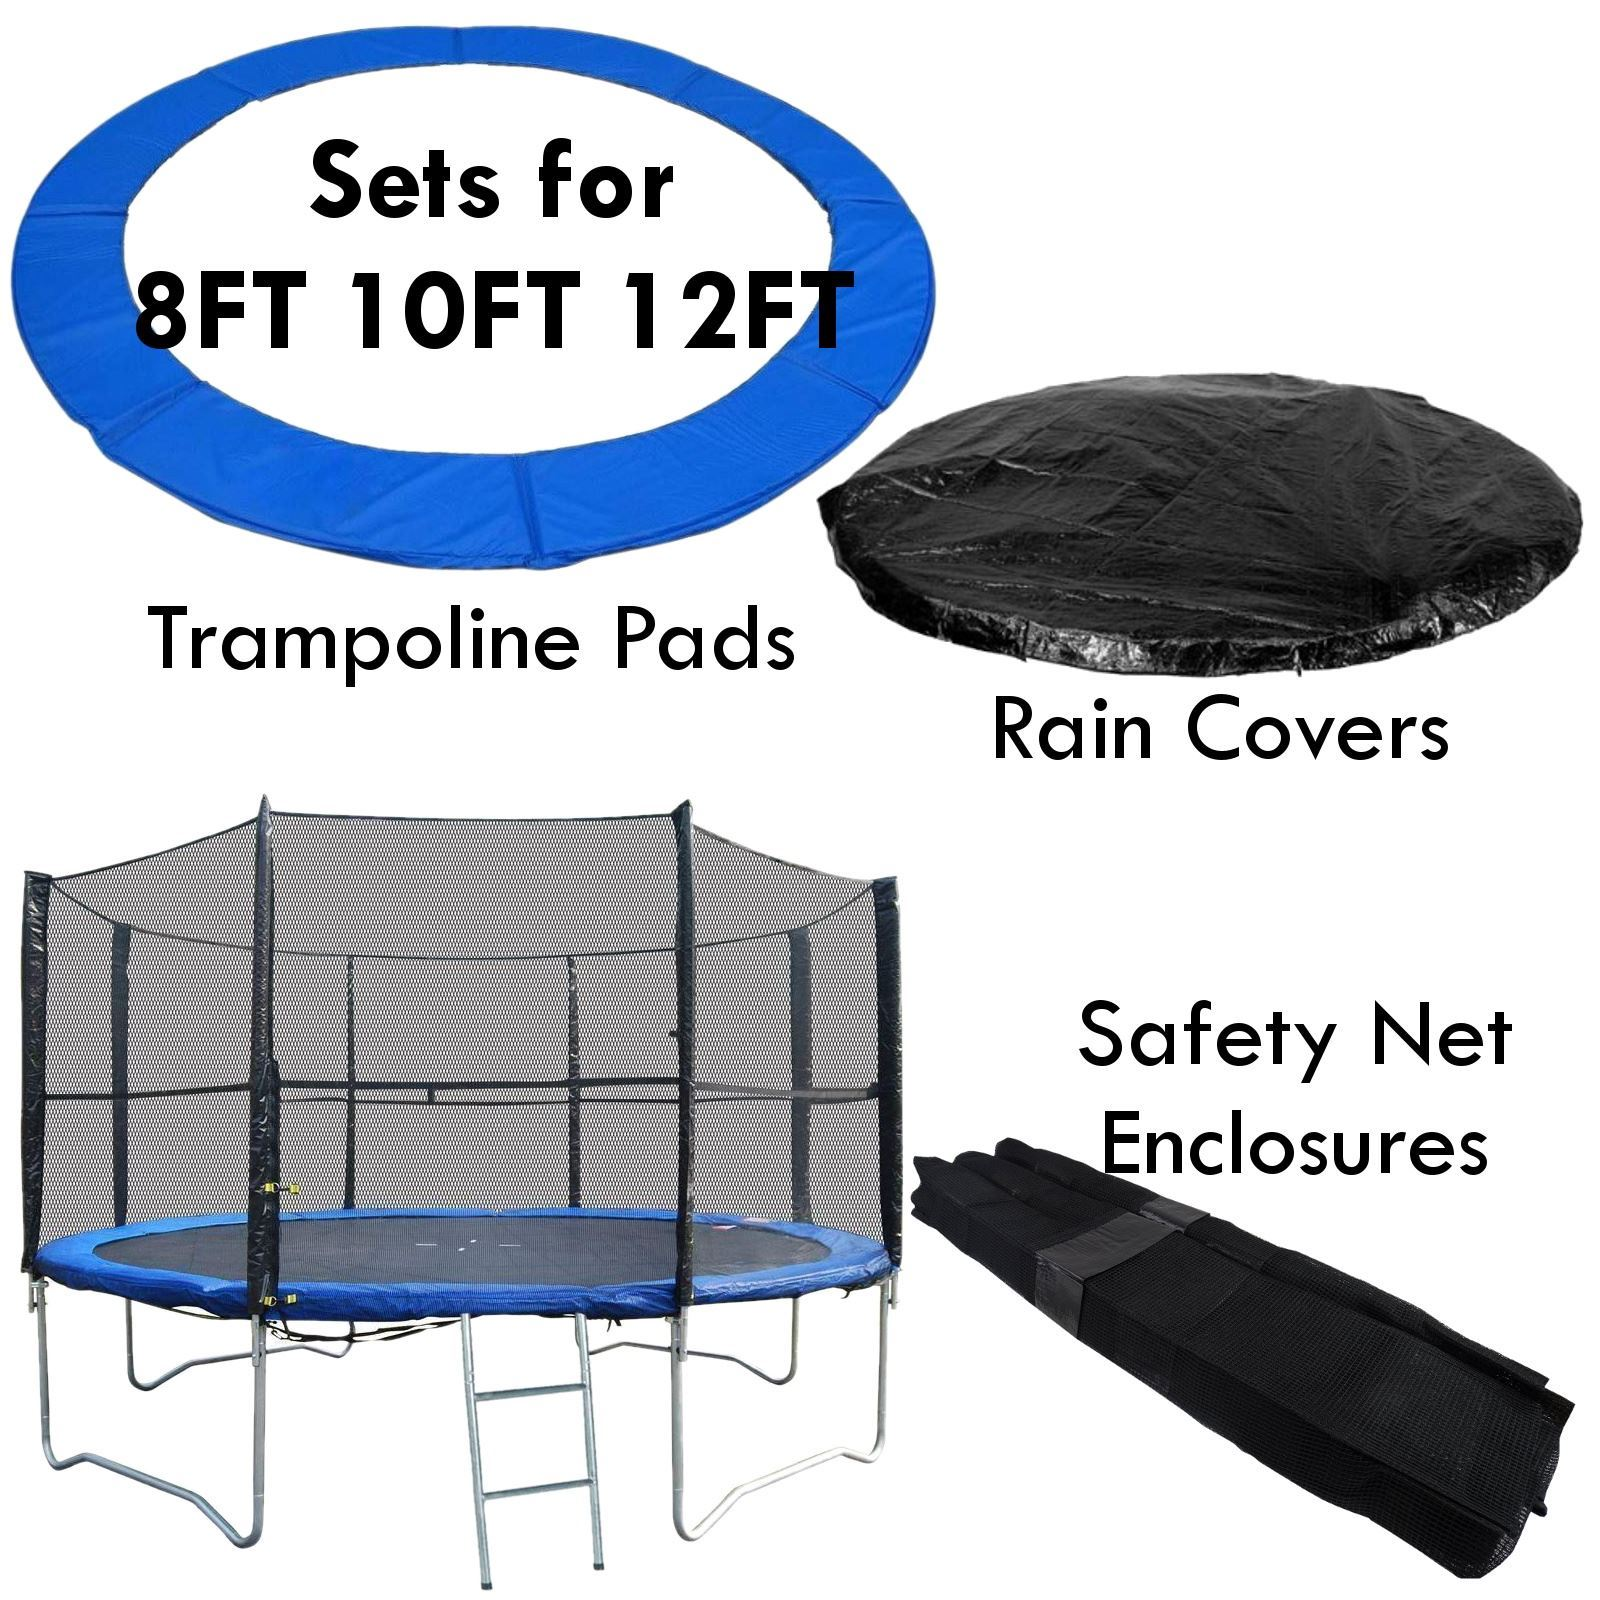 Trampoline Safety Enlosure Net And Pad Set Fits 8FT 10FT